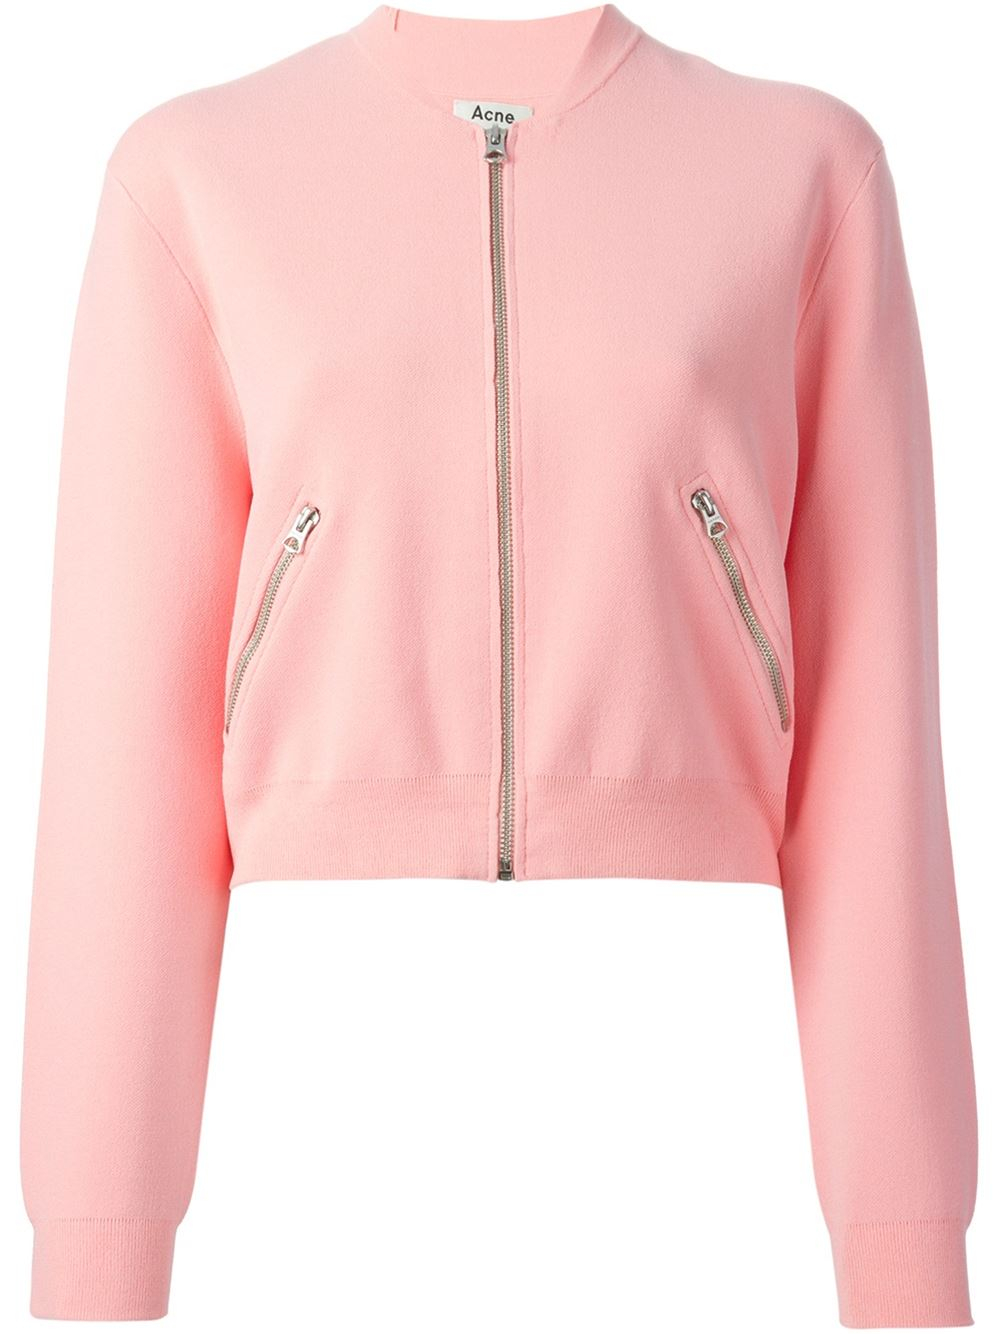 Acne studios Olympia Knit Bomber Jacket in Pink